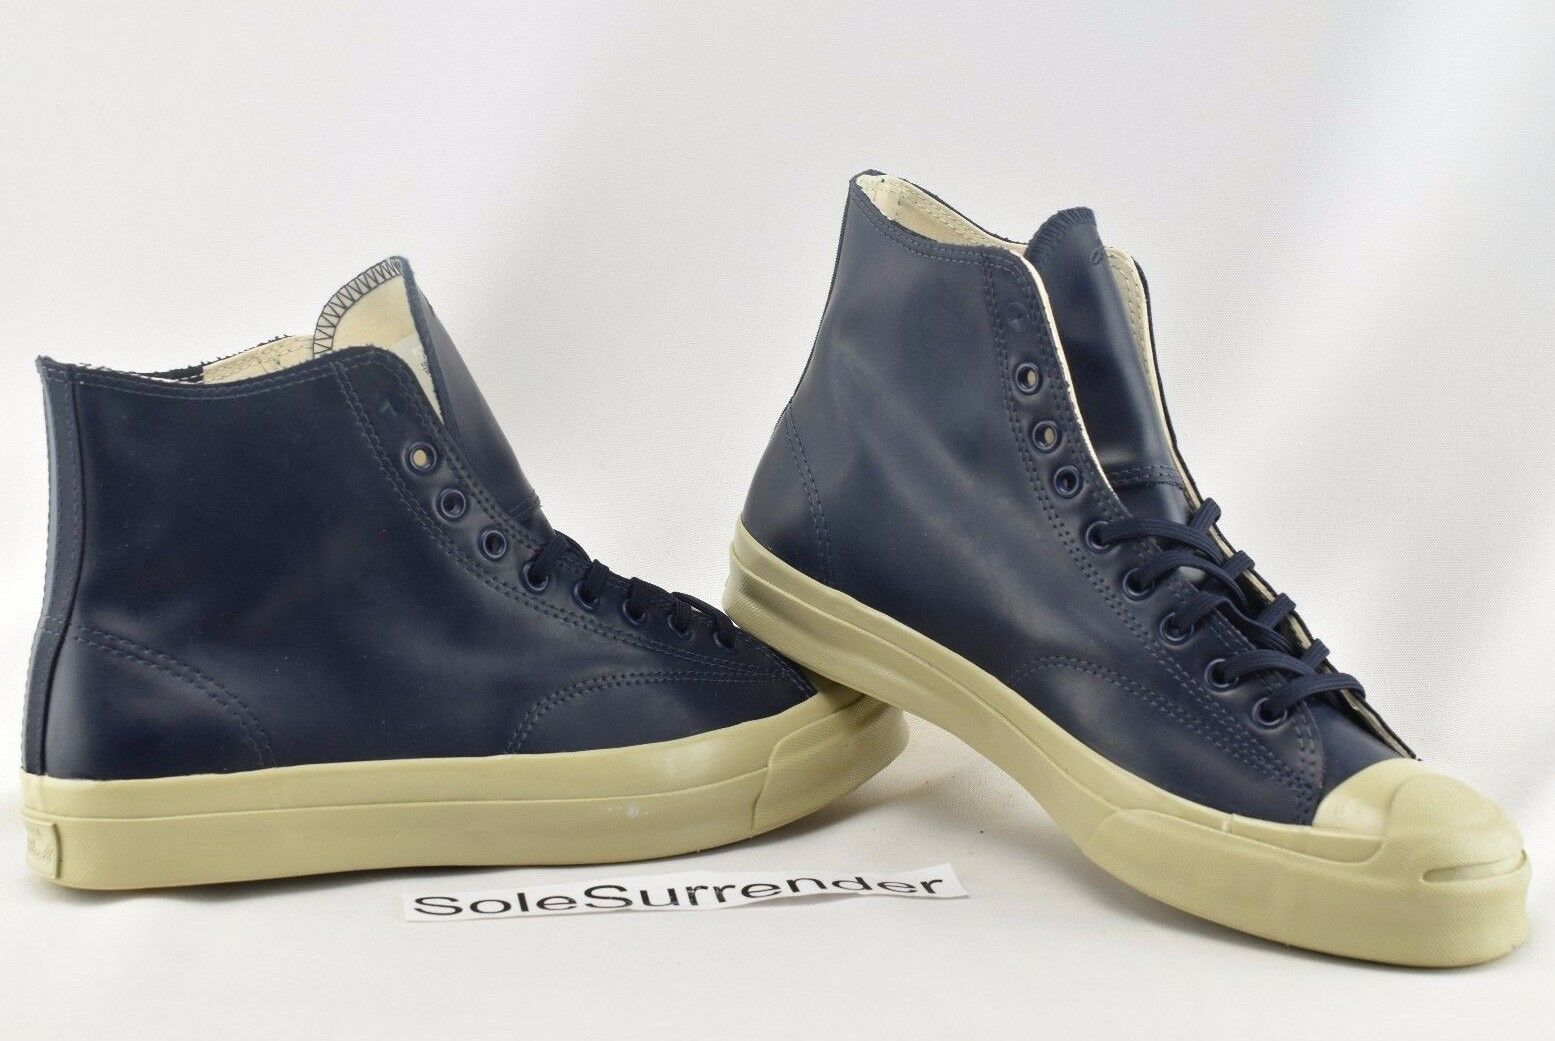 Converse Jack Purcell SIZE Signature Rubber High - SIZE Purcell 10 - 153582C Navy Beige Grau 74814d